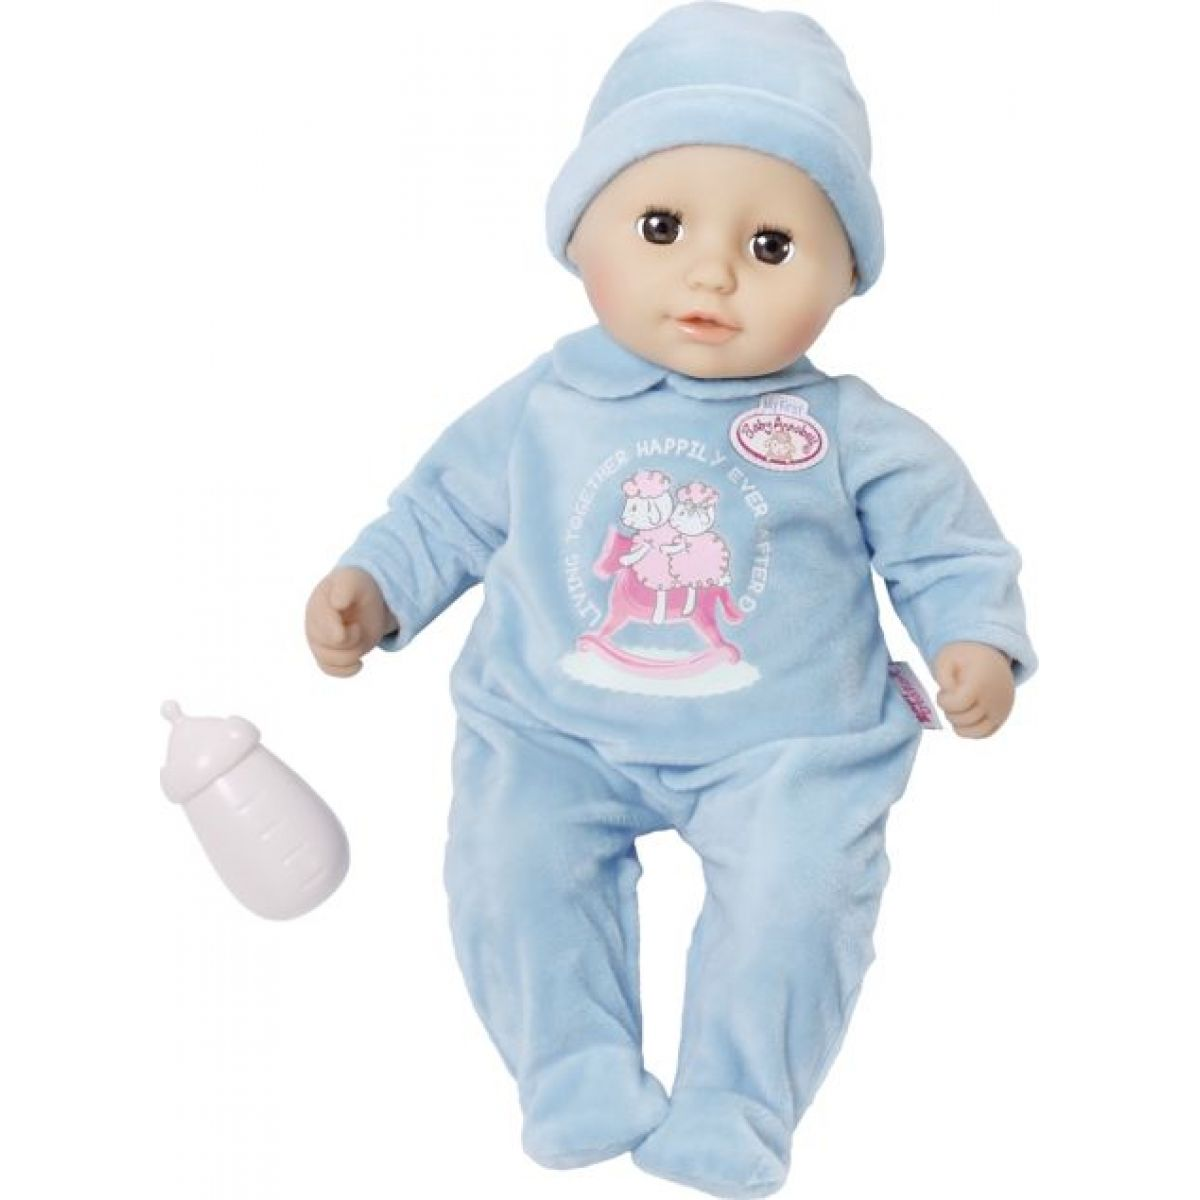 Zapf Creation Baby Annabell Little Alexander 36 cm